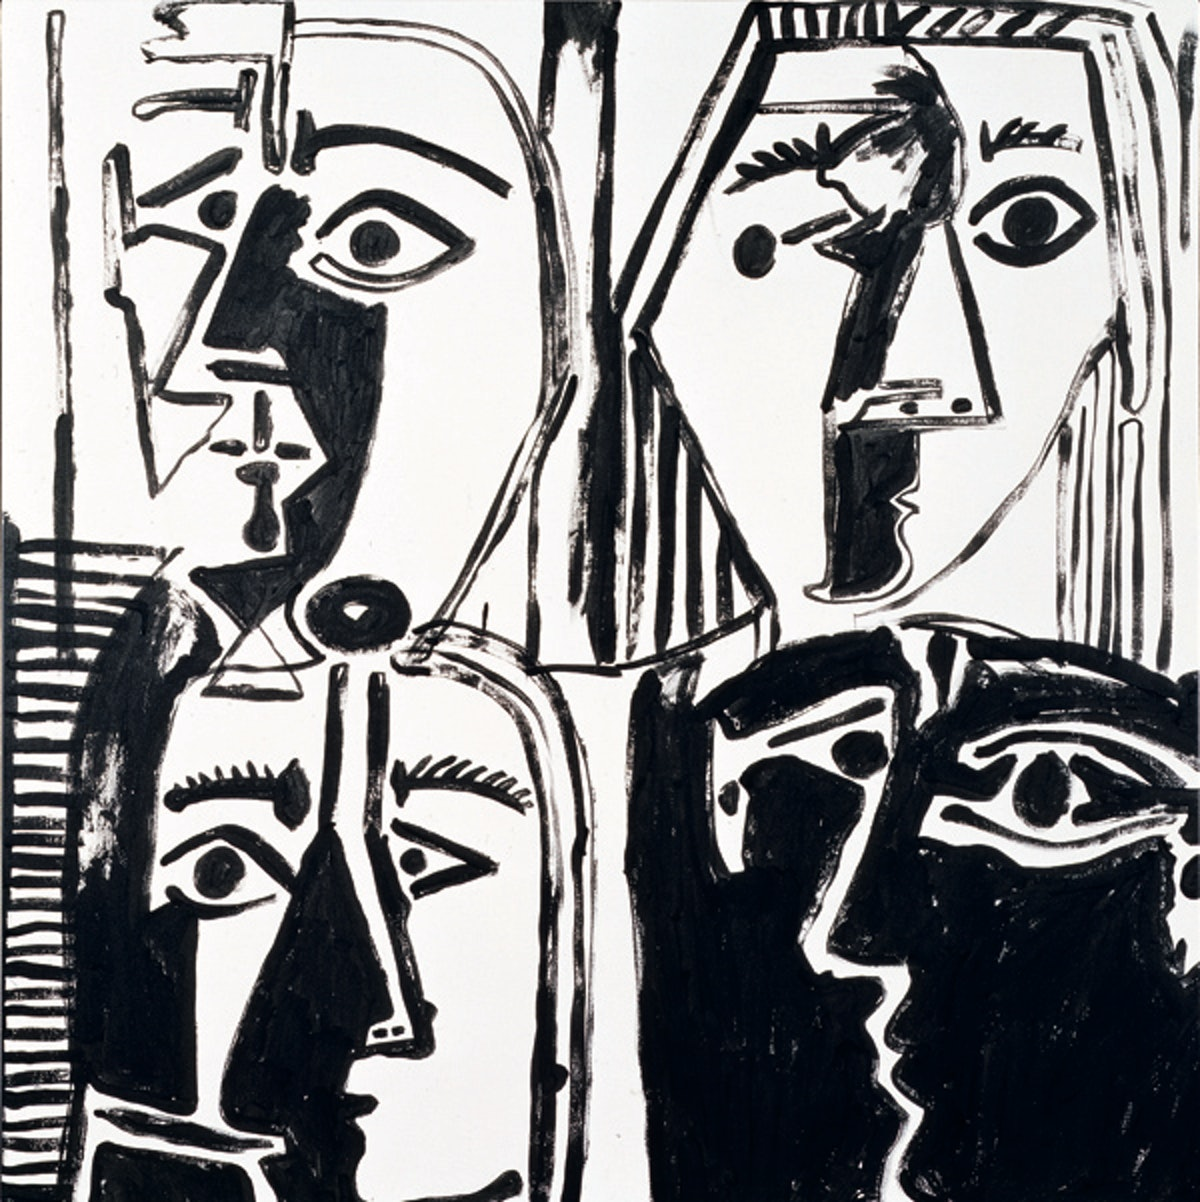 Andy Warhol (Head after Picasso) No XII, YEAR TK